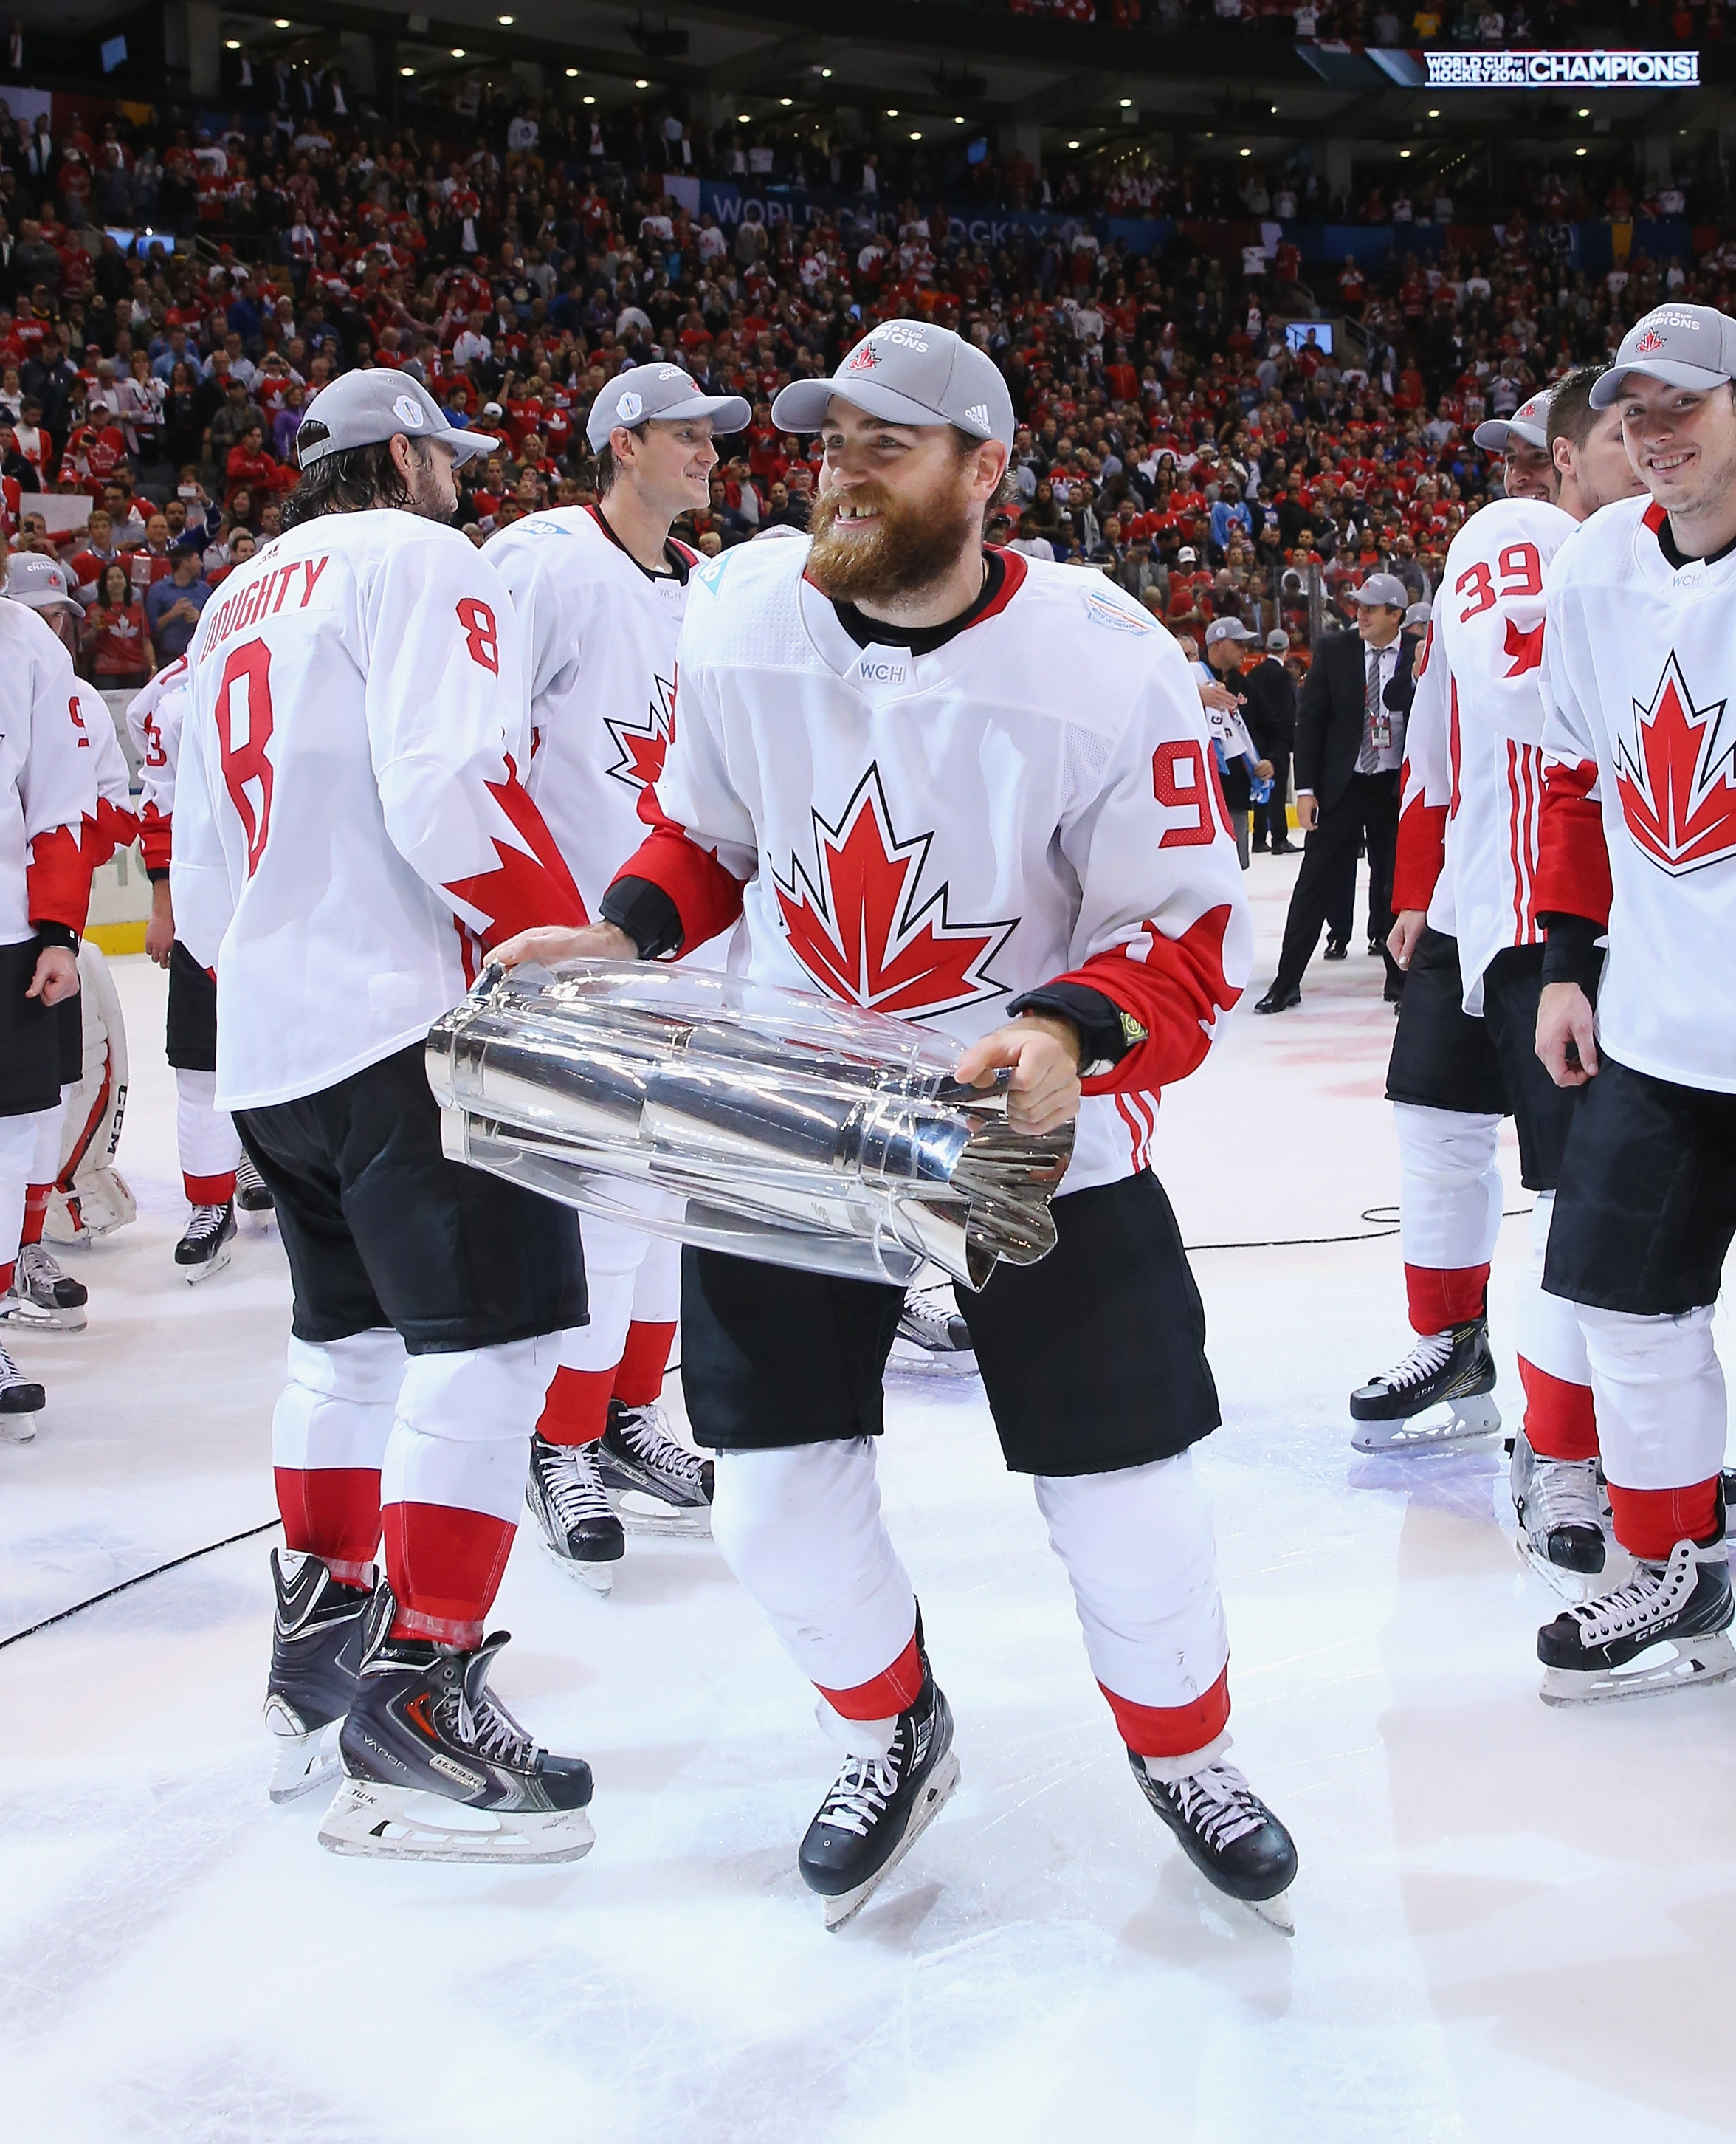 Team Canada's Ryan O'Reilly carries the World Cup of Hockey Trophy after Europe's defeat.